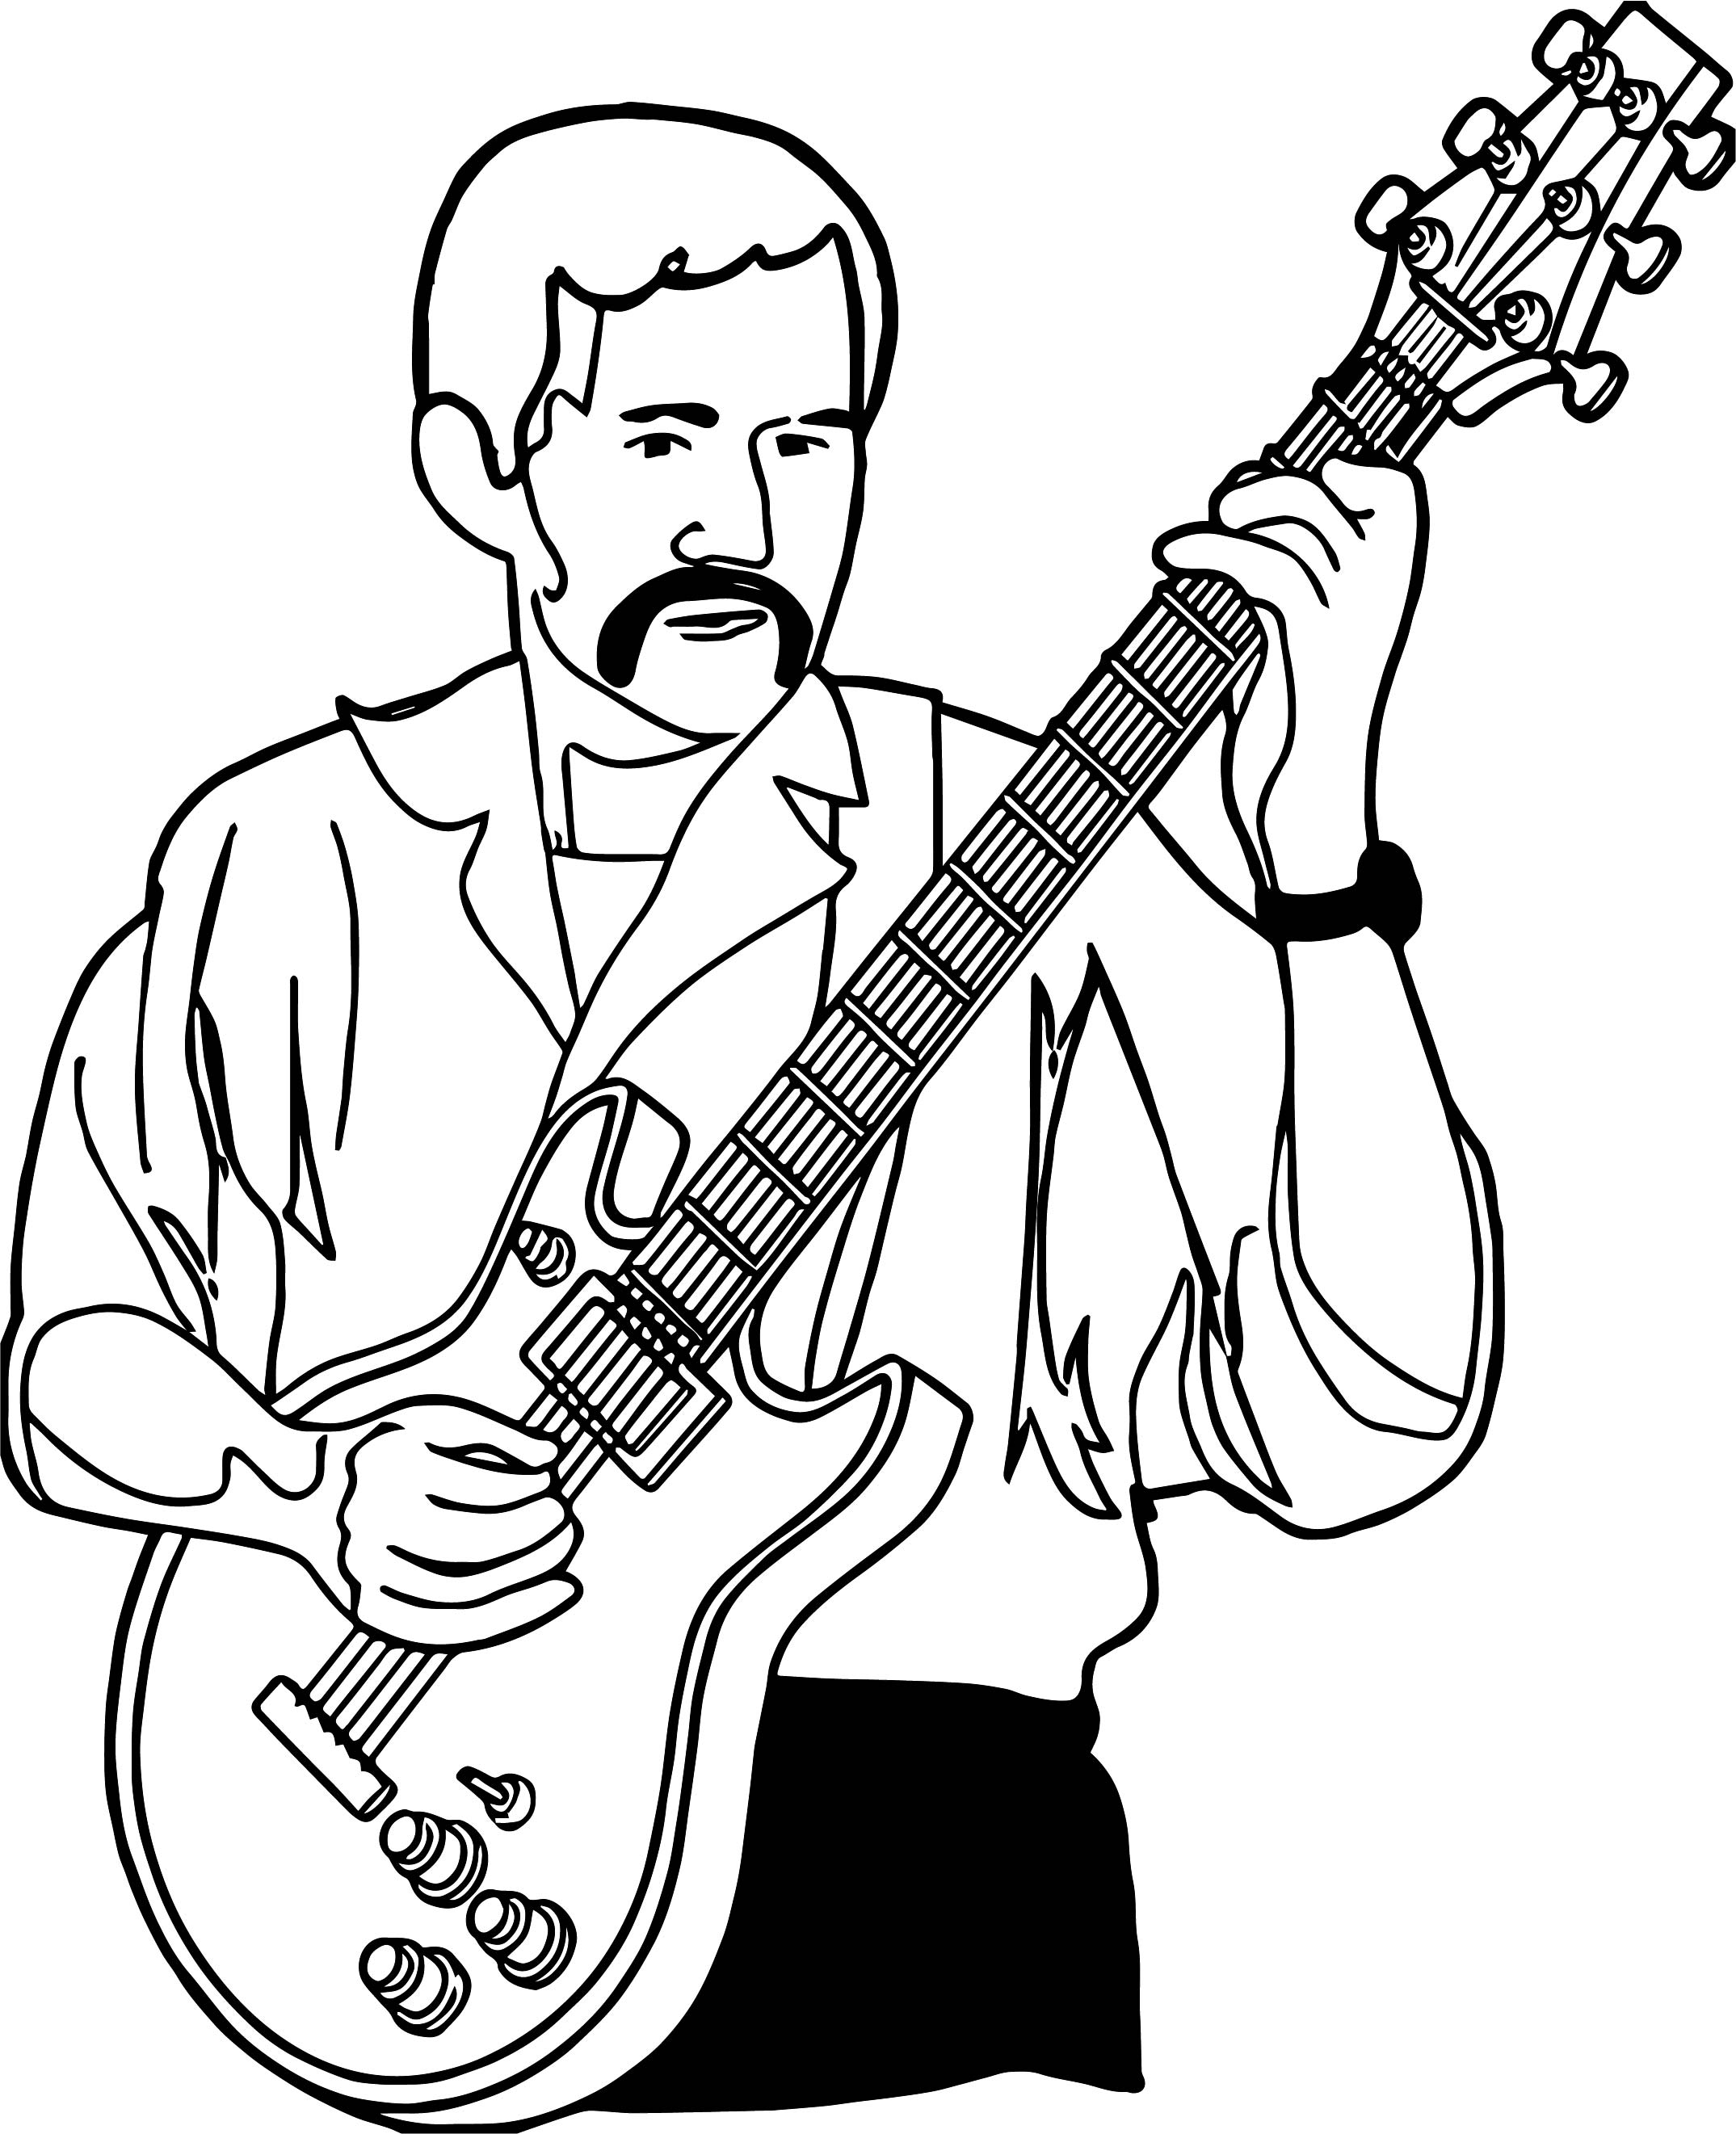 Acoustic Guitars Colouring Pages Sketch Coloring Page